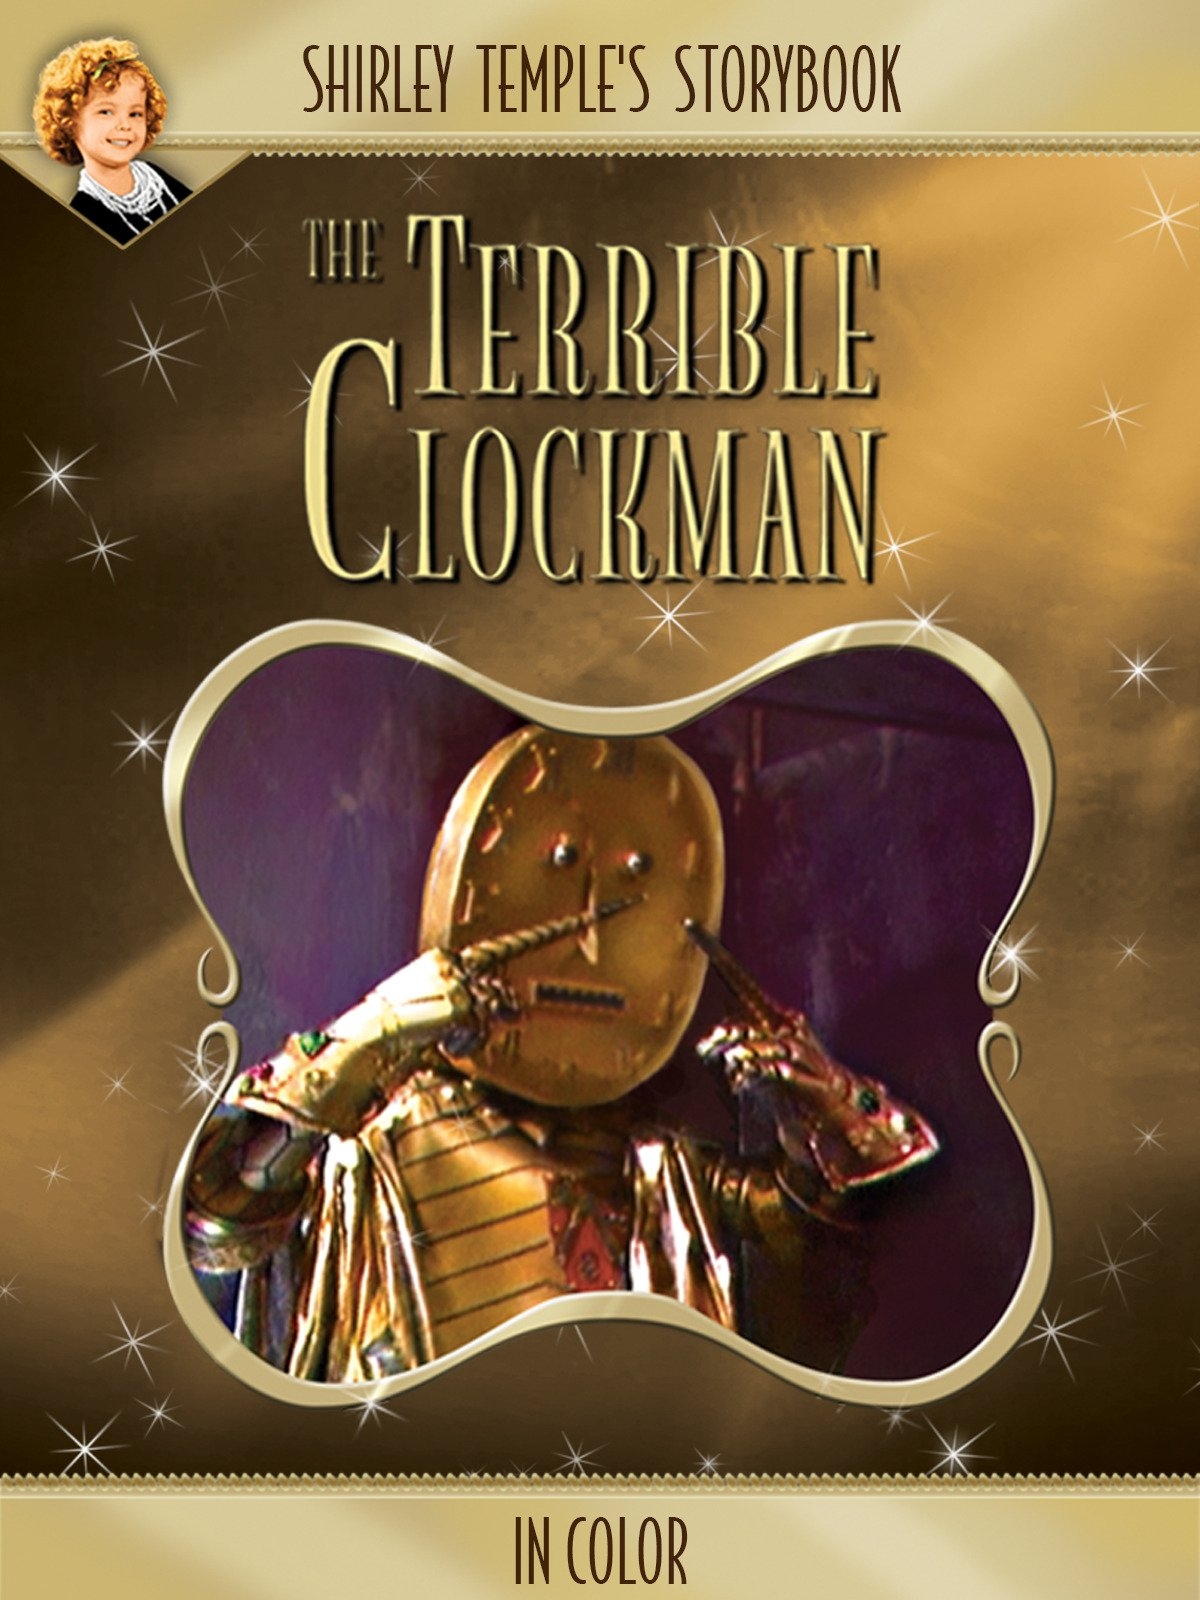 Shirley Temple's Storybook: The Terrible Clockman (in Color) on Amazon Prime Video UK